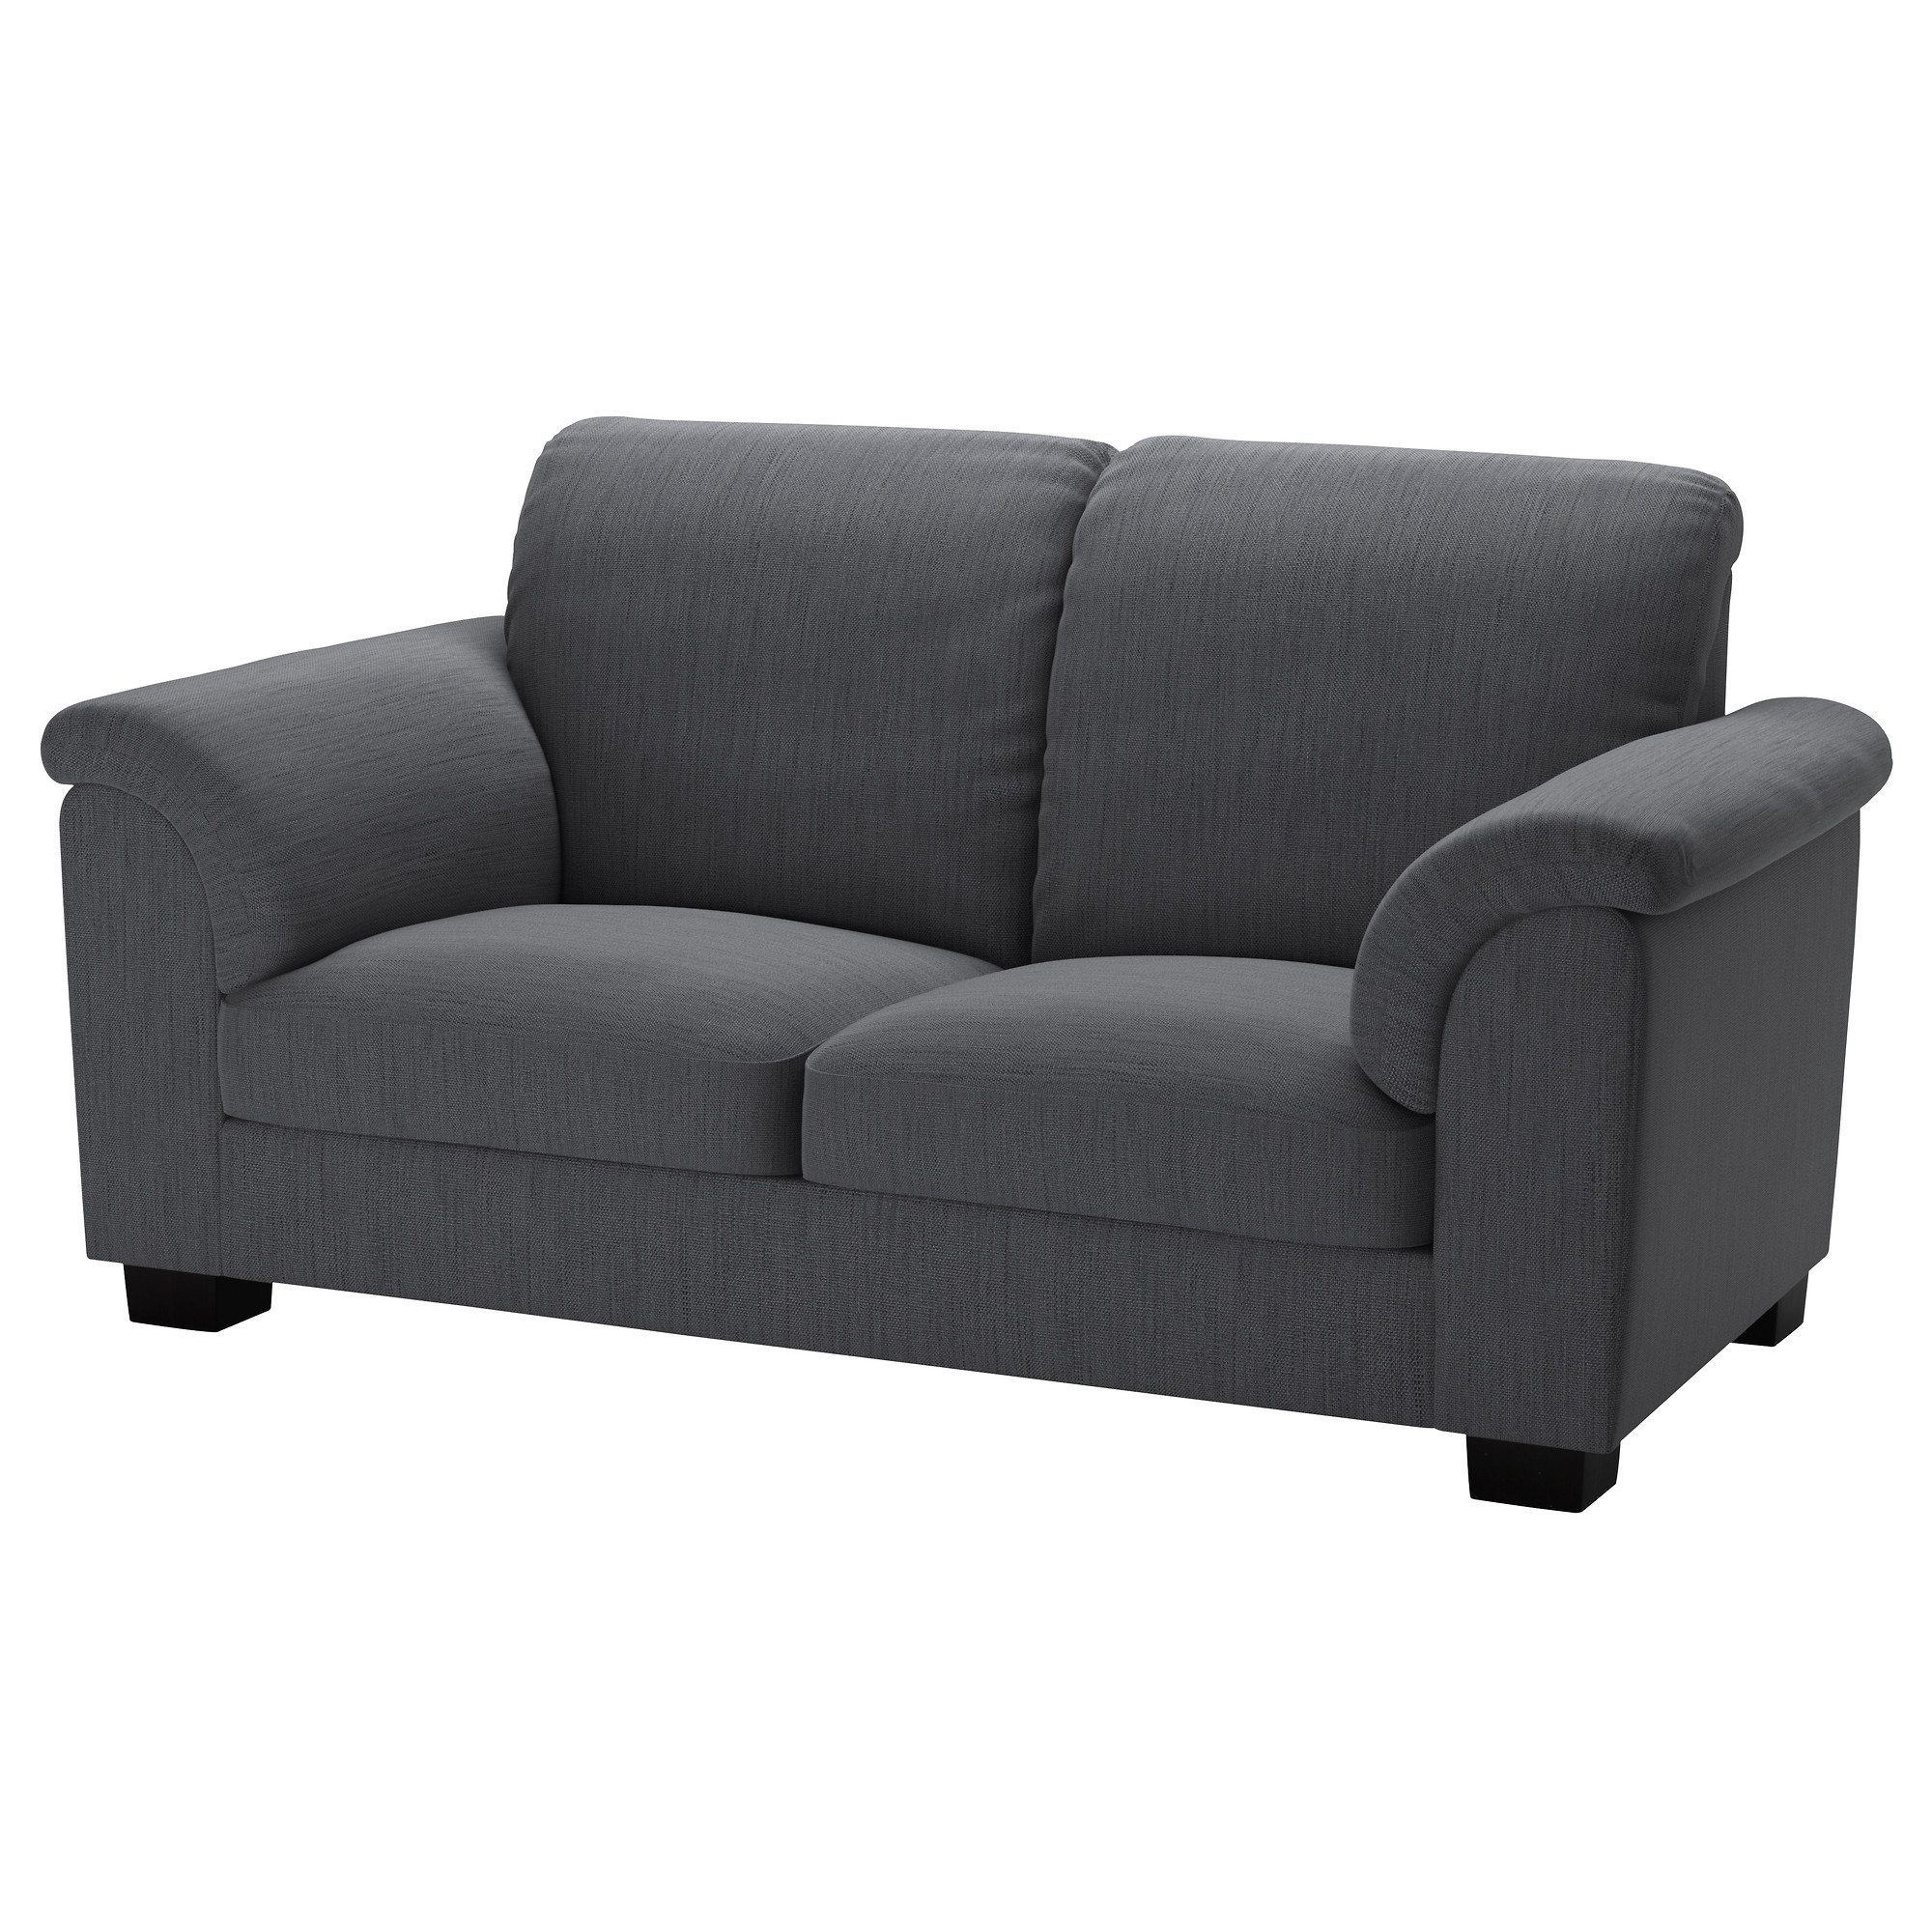 tidafors two seat sofa hensta grey ikea rh ikea com two seater sofa ikea two seater sofa design